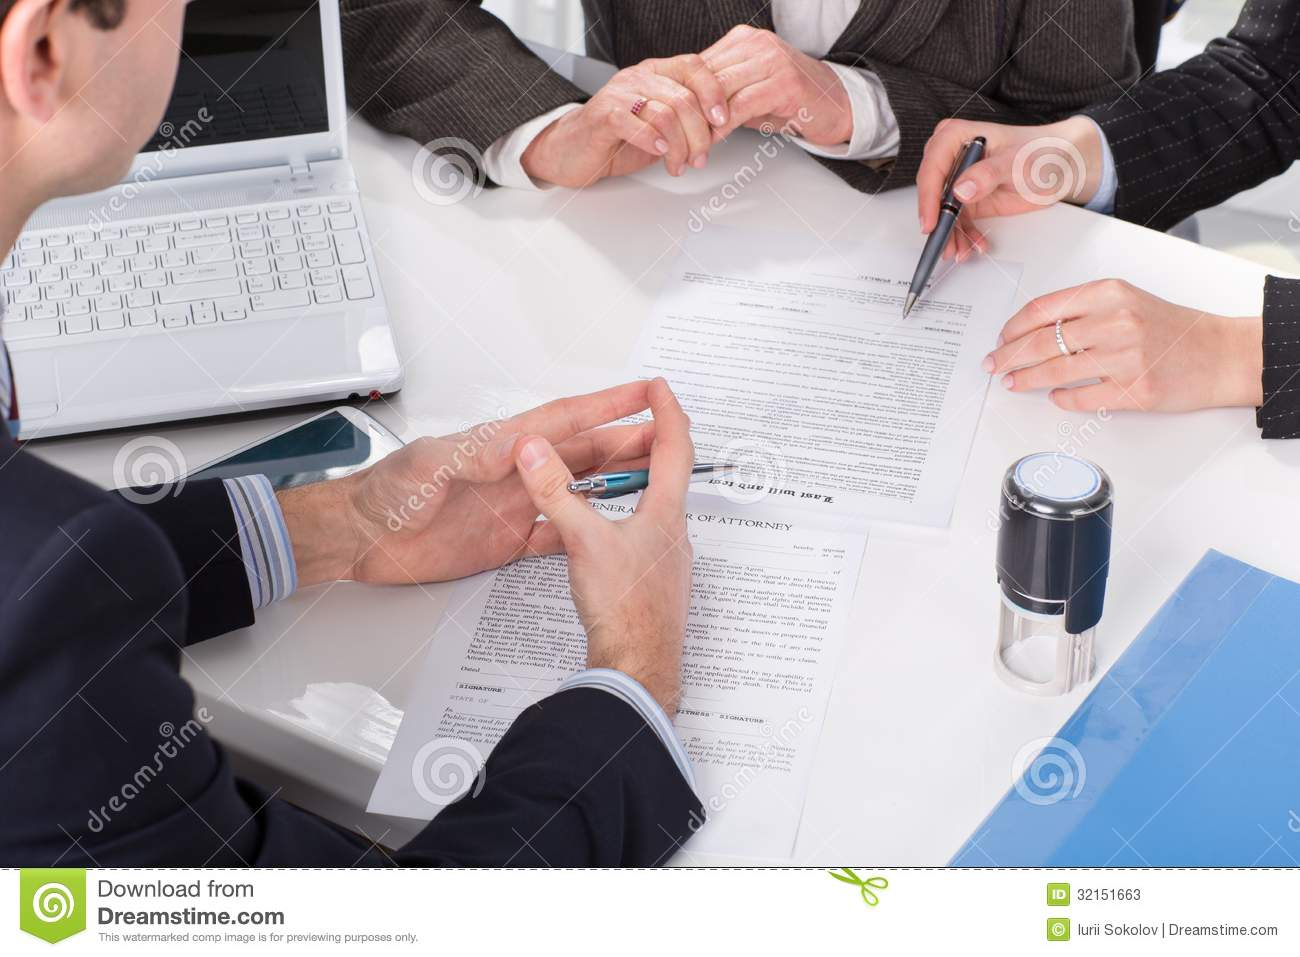 Hands Three People Signing Documents Stock S